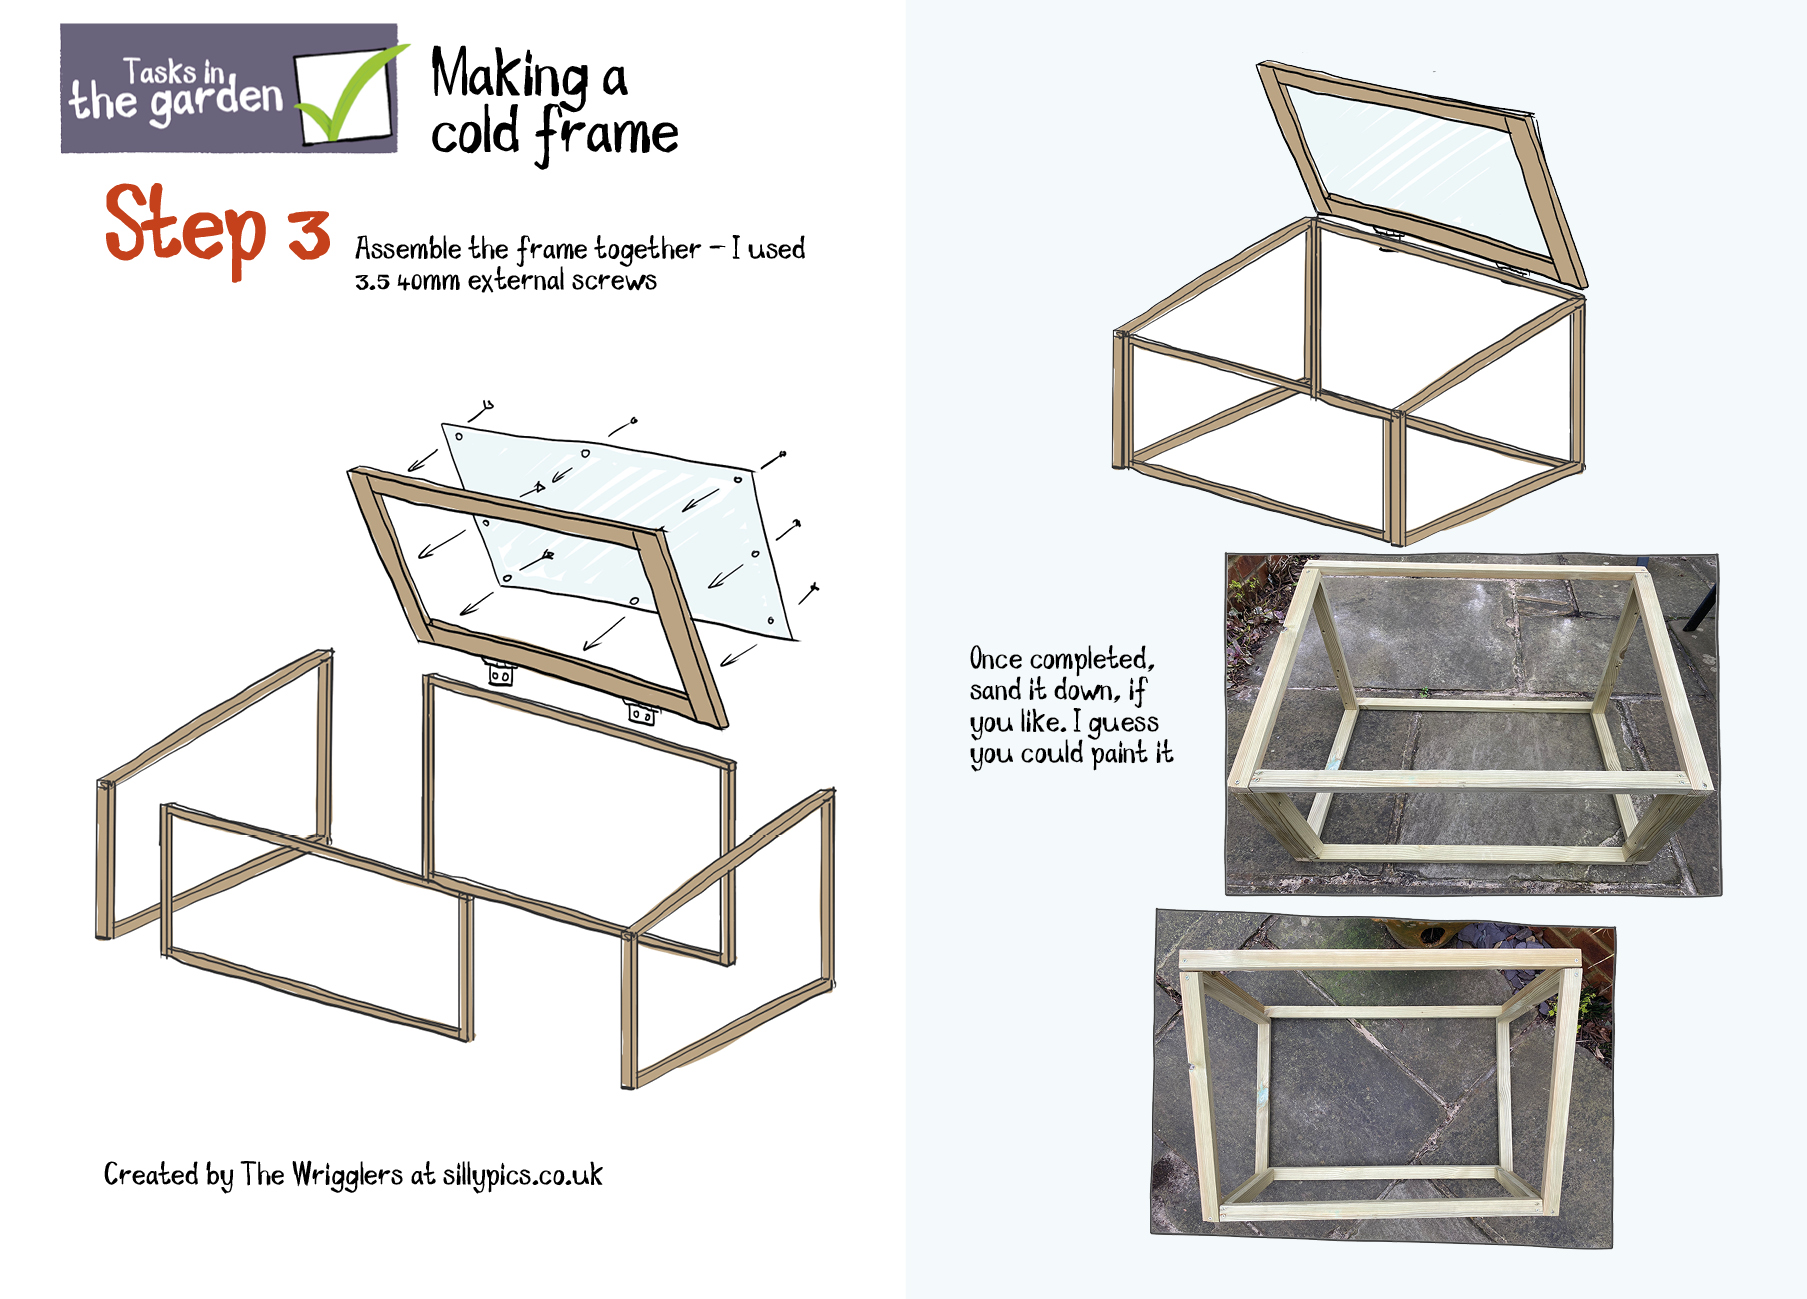 showing the frame parts of a cold frame being put together